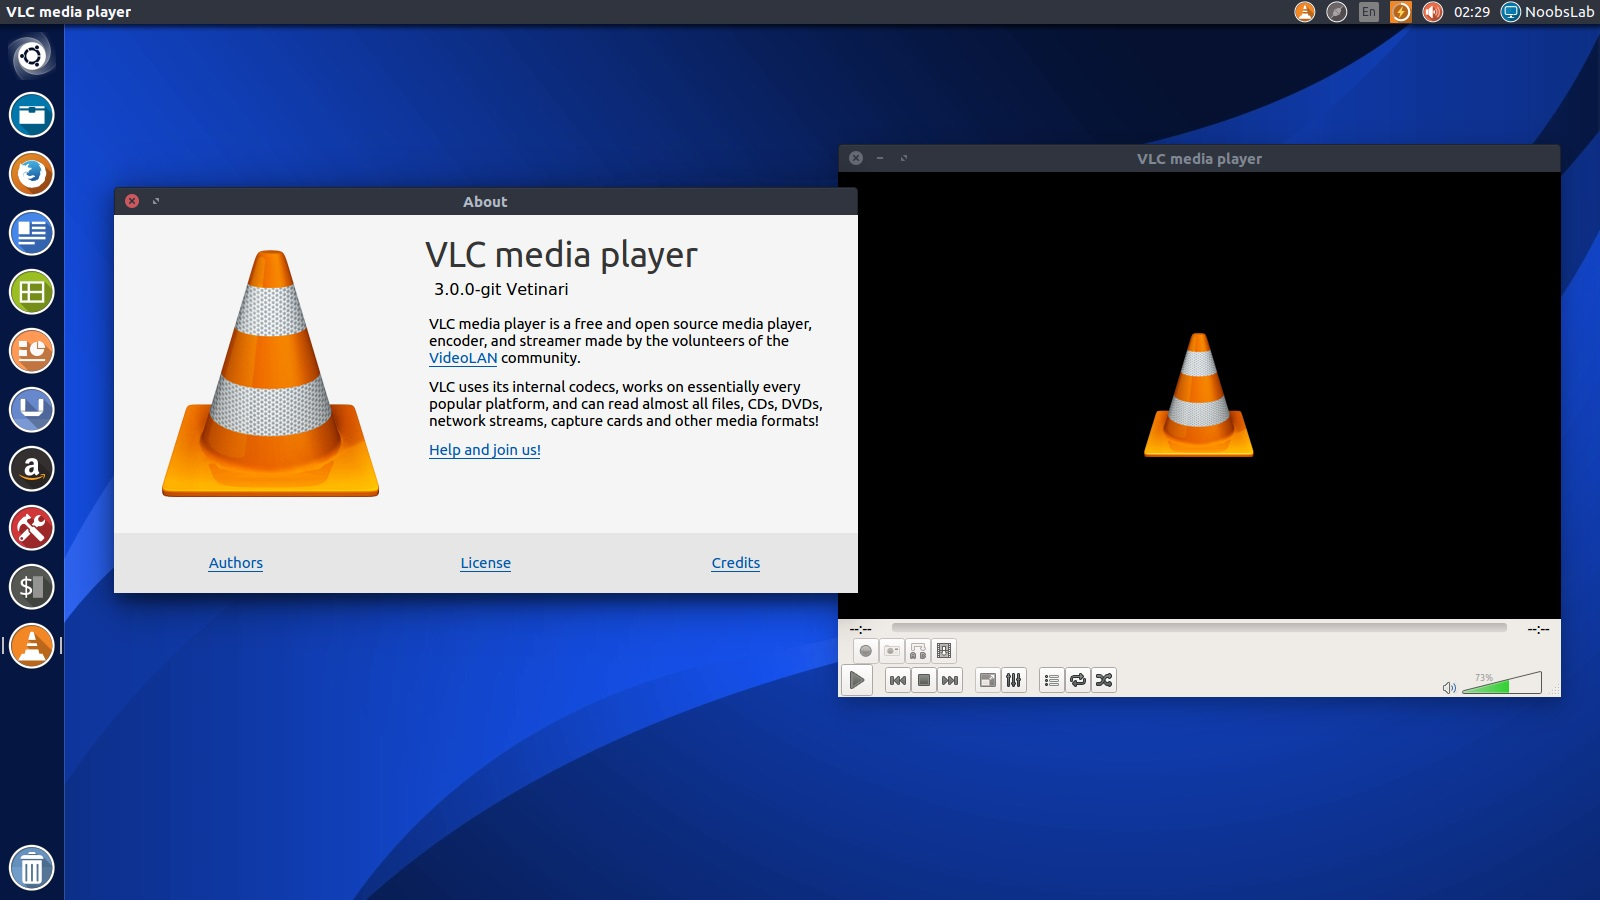 VLC media player with skins for Ubuntu/Linux Mint/other